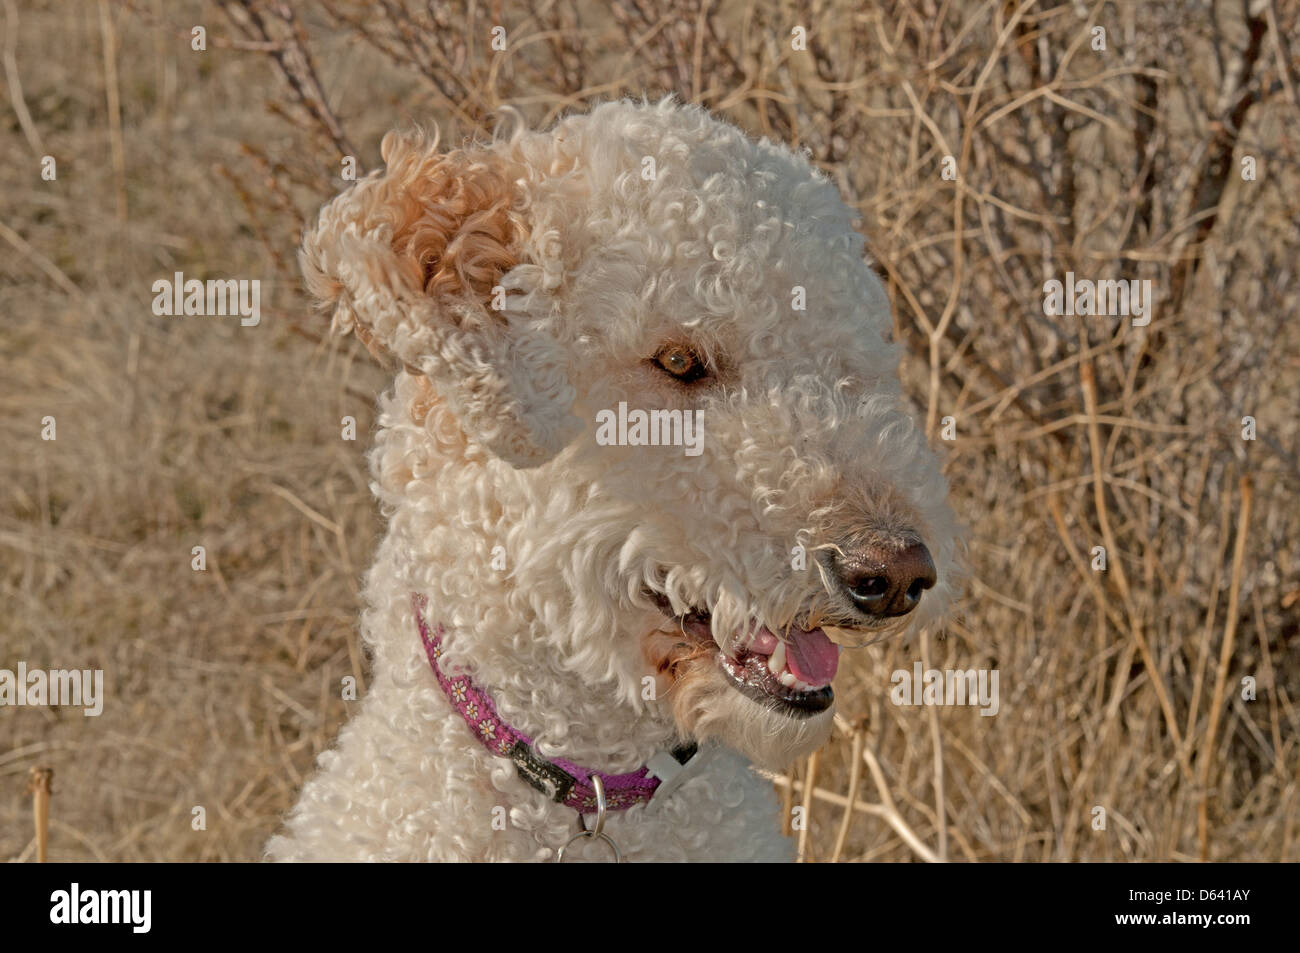 Goldendoodle (cross between a golden retriever and a standard poodle) portrait - Stock Image